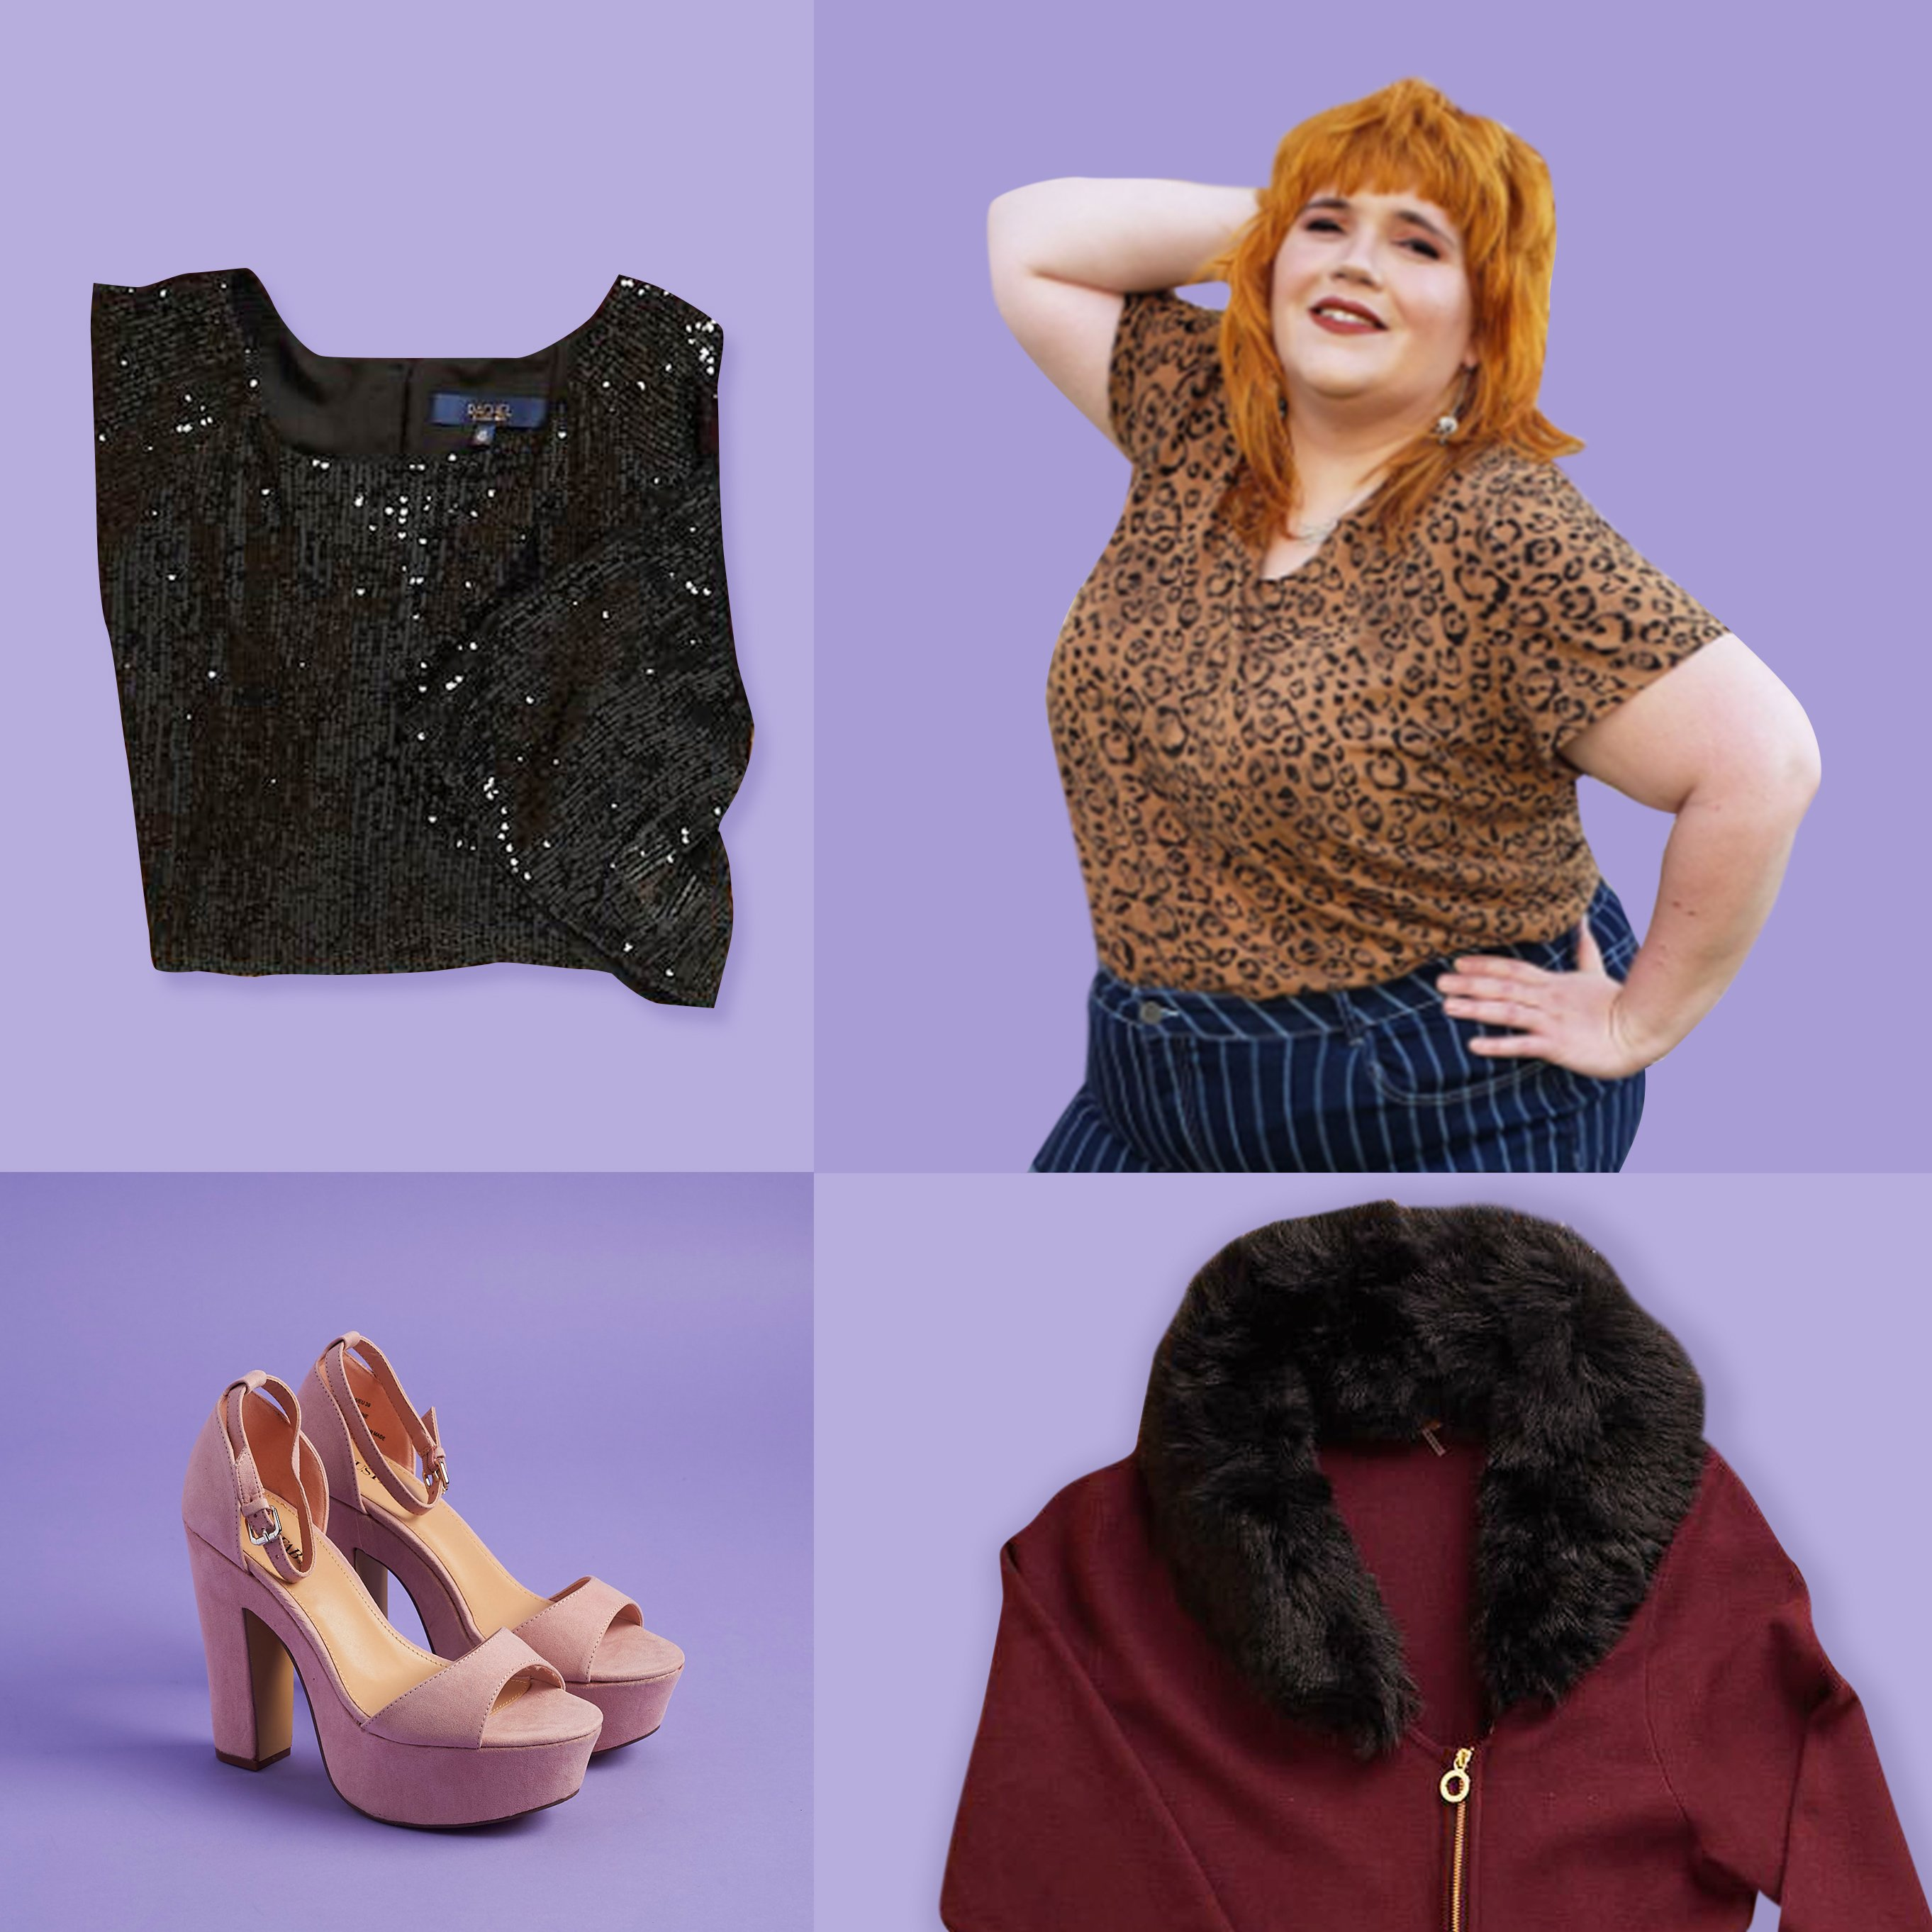 The 21 Best Plus-Size Clothing Subscription Boxes for Sizes 12-32